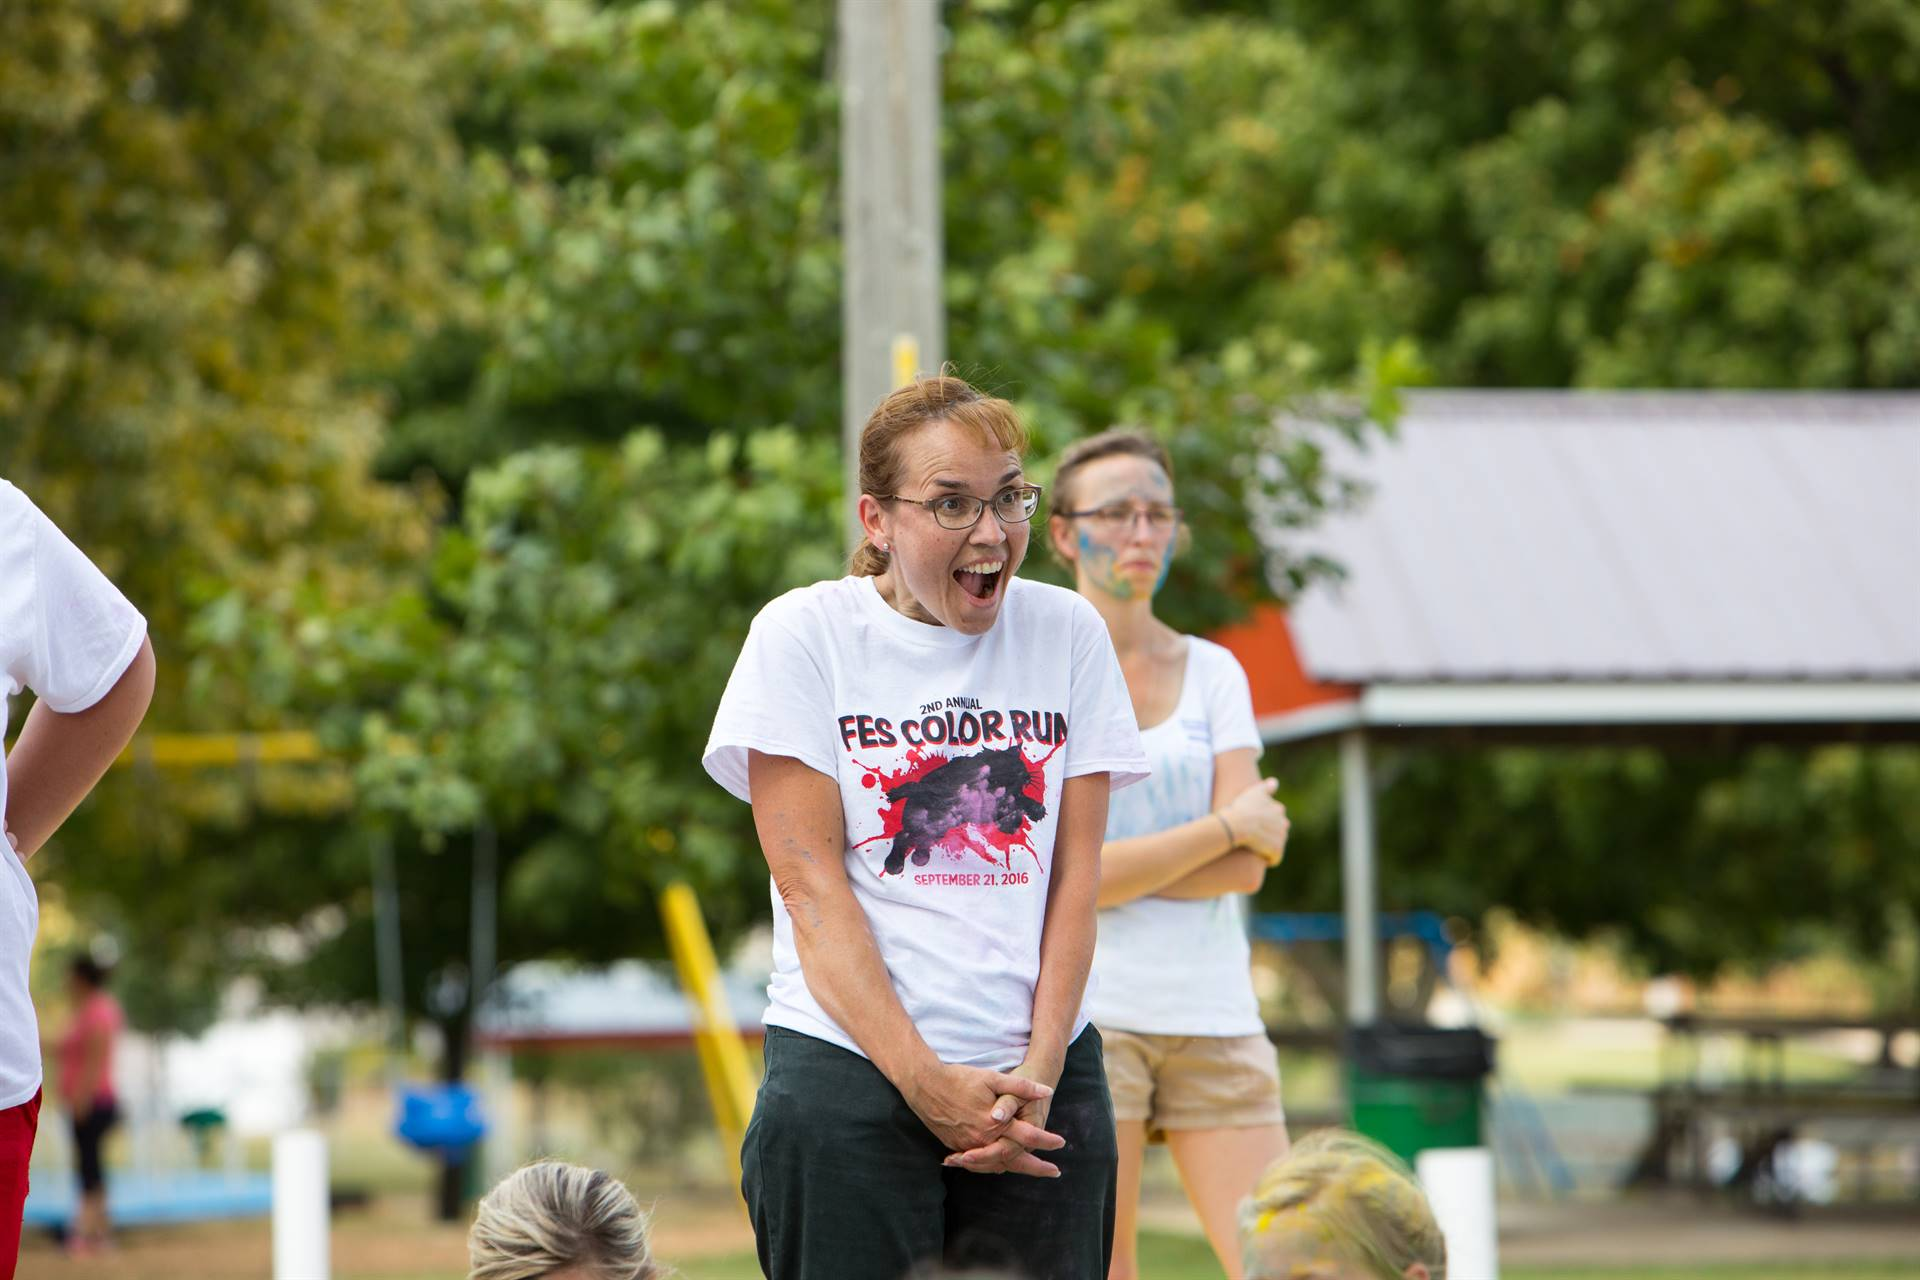 Teacher laughing at color run